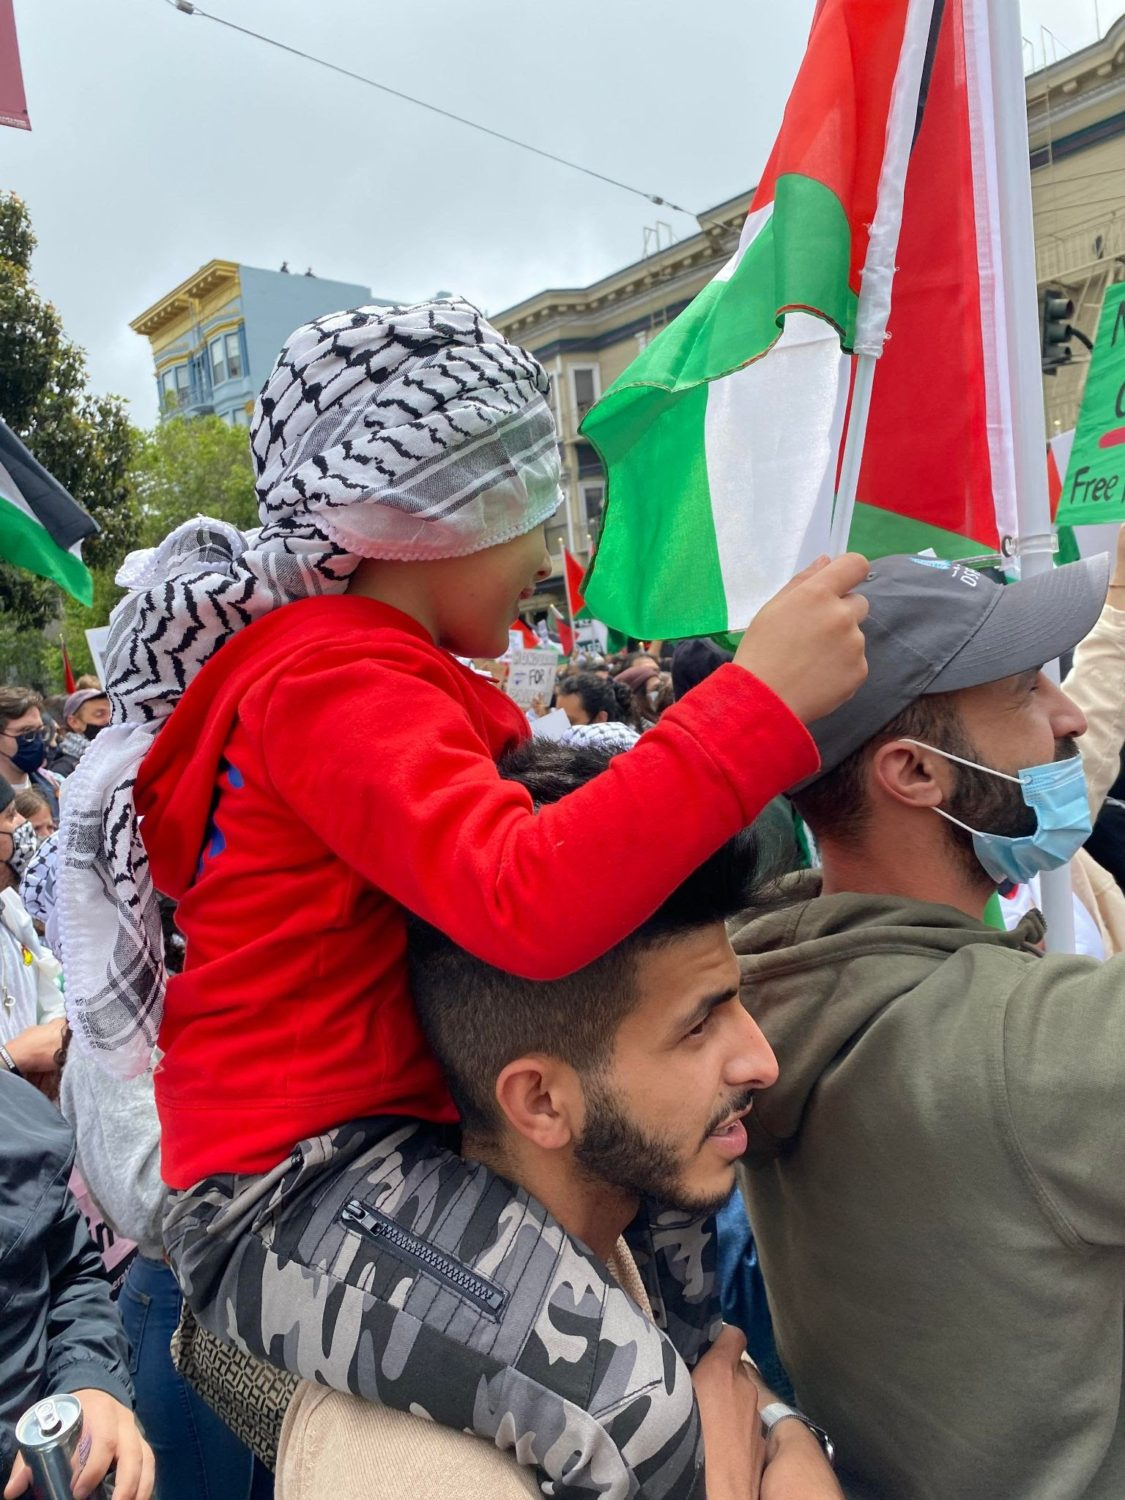 SF-for-Palestine-solidarity-young-and-old-051521-by-Poor, From poverty tows to Palestine: The violence of settler colonial evictions across Mama Earth, World News & Views